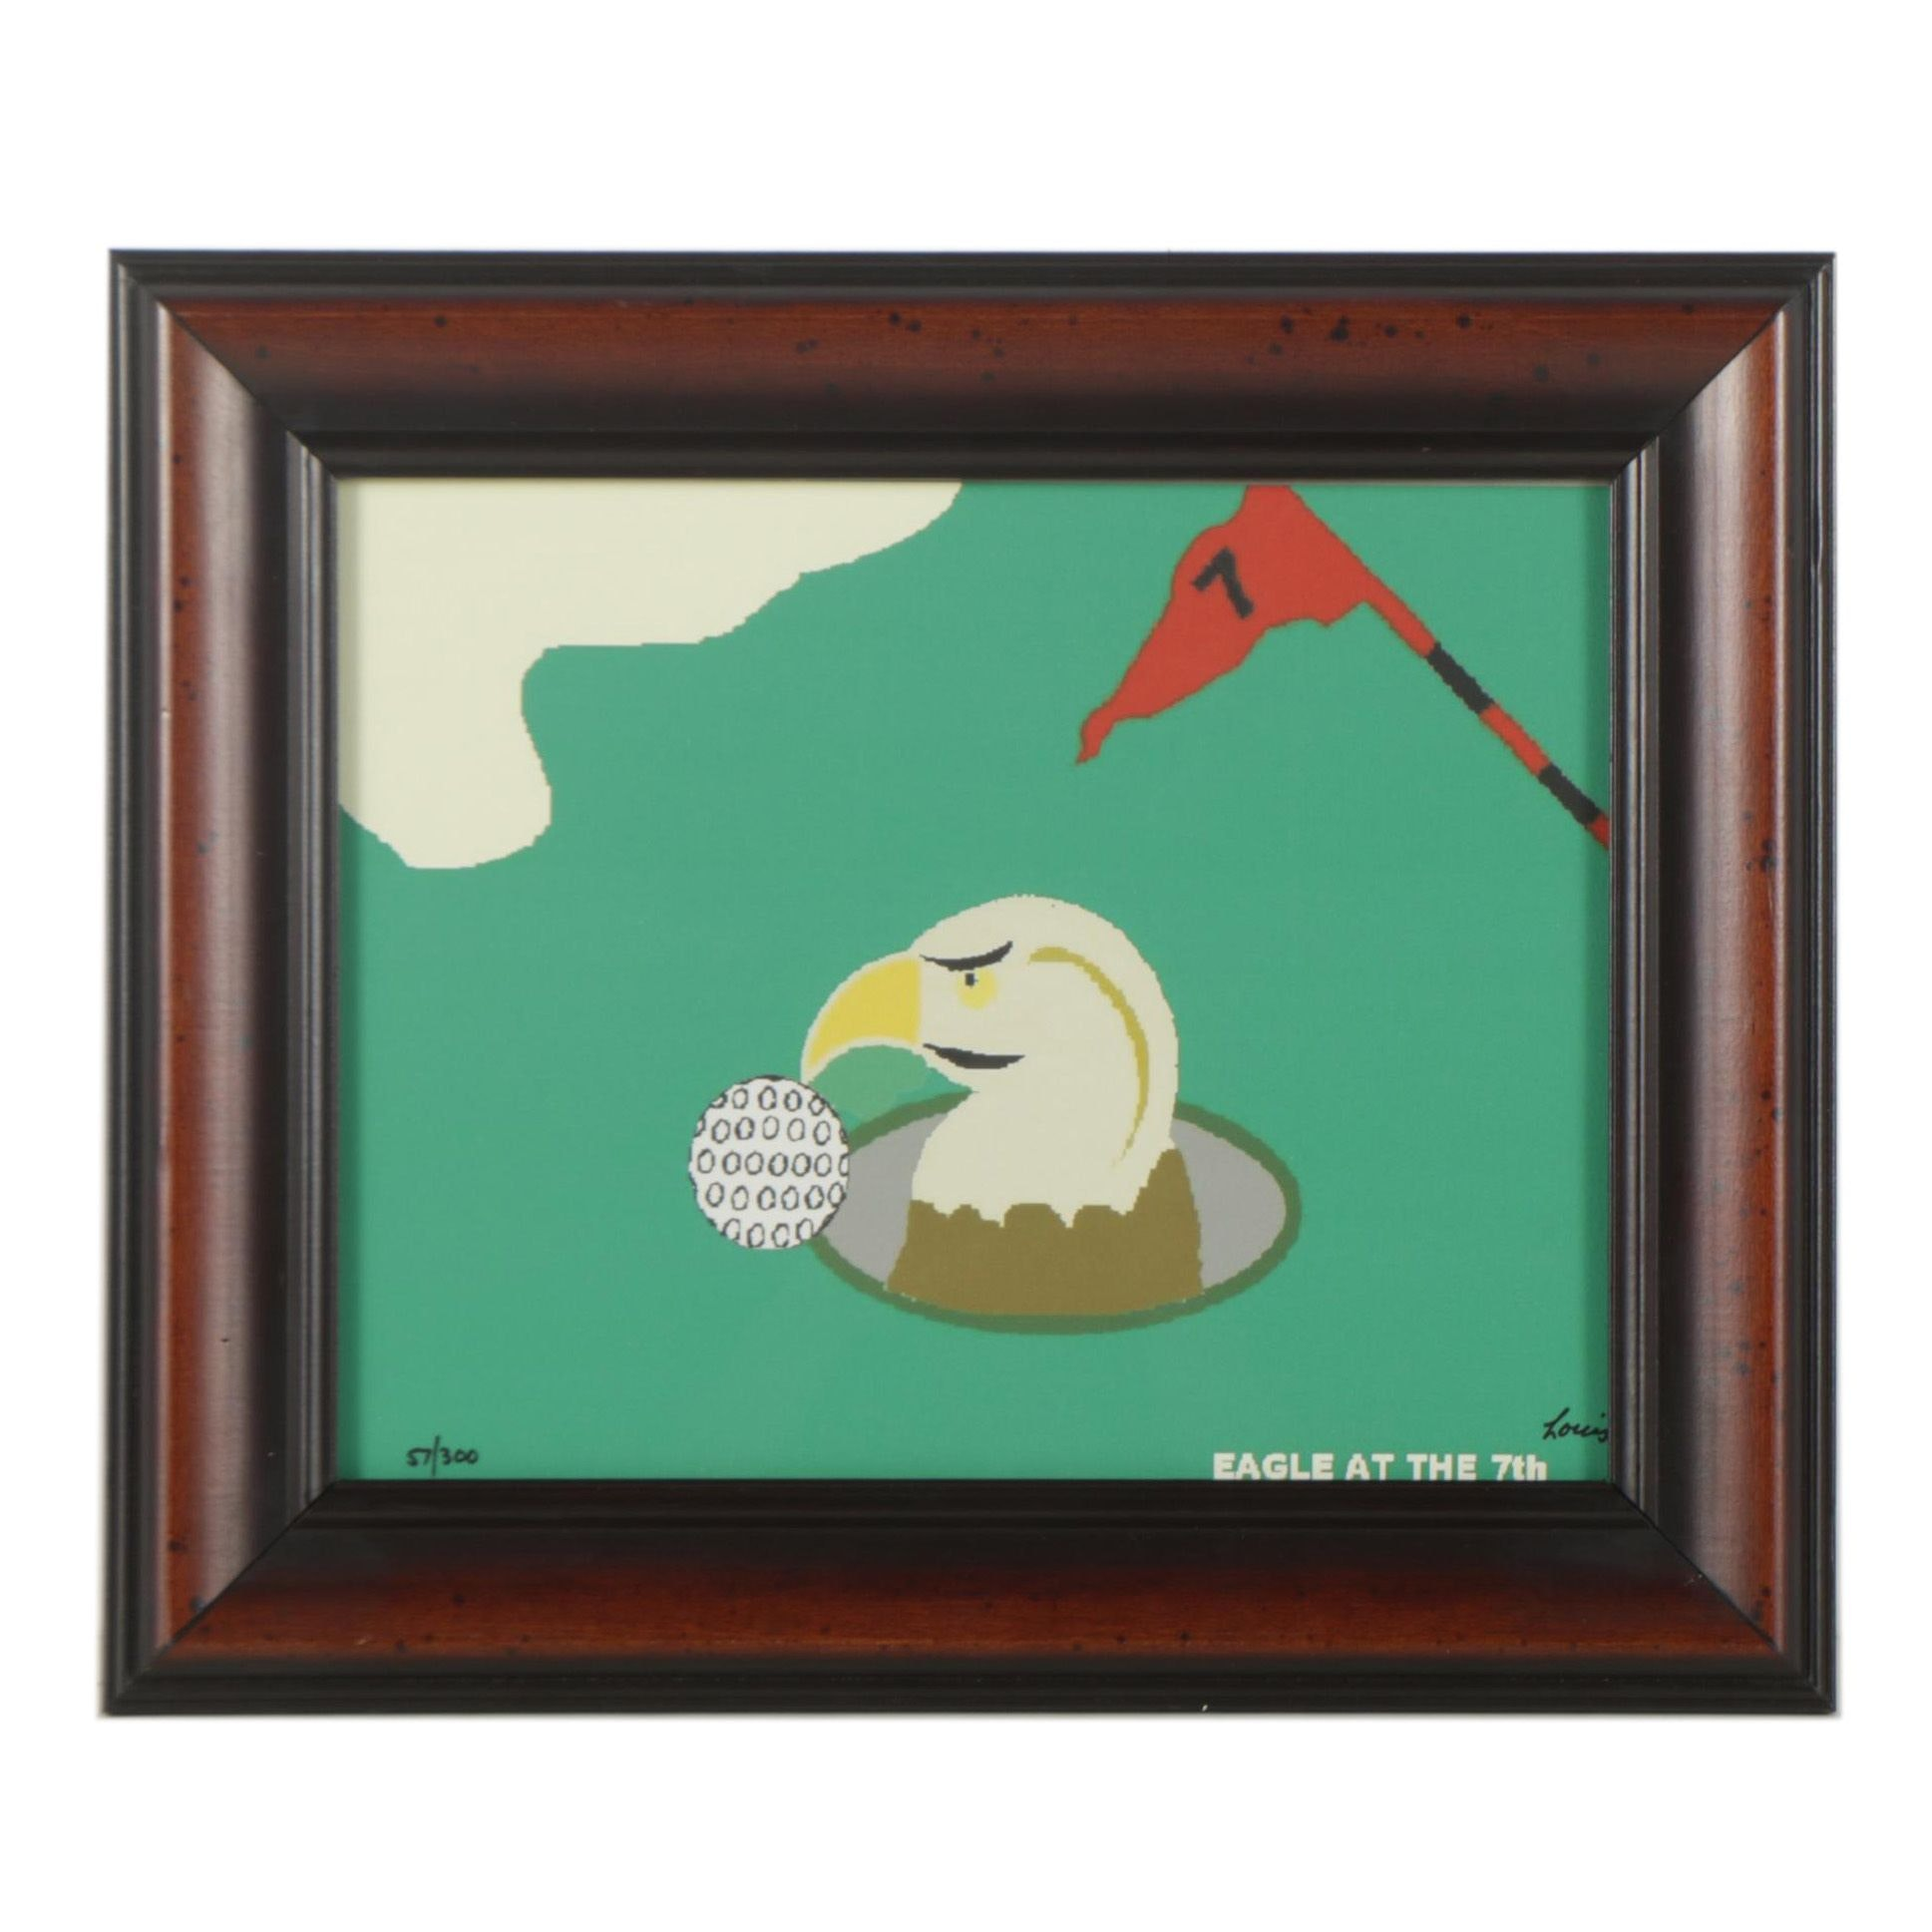 """Louis """"Eagle at the 7th"""" Giclee Print"""